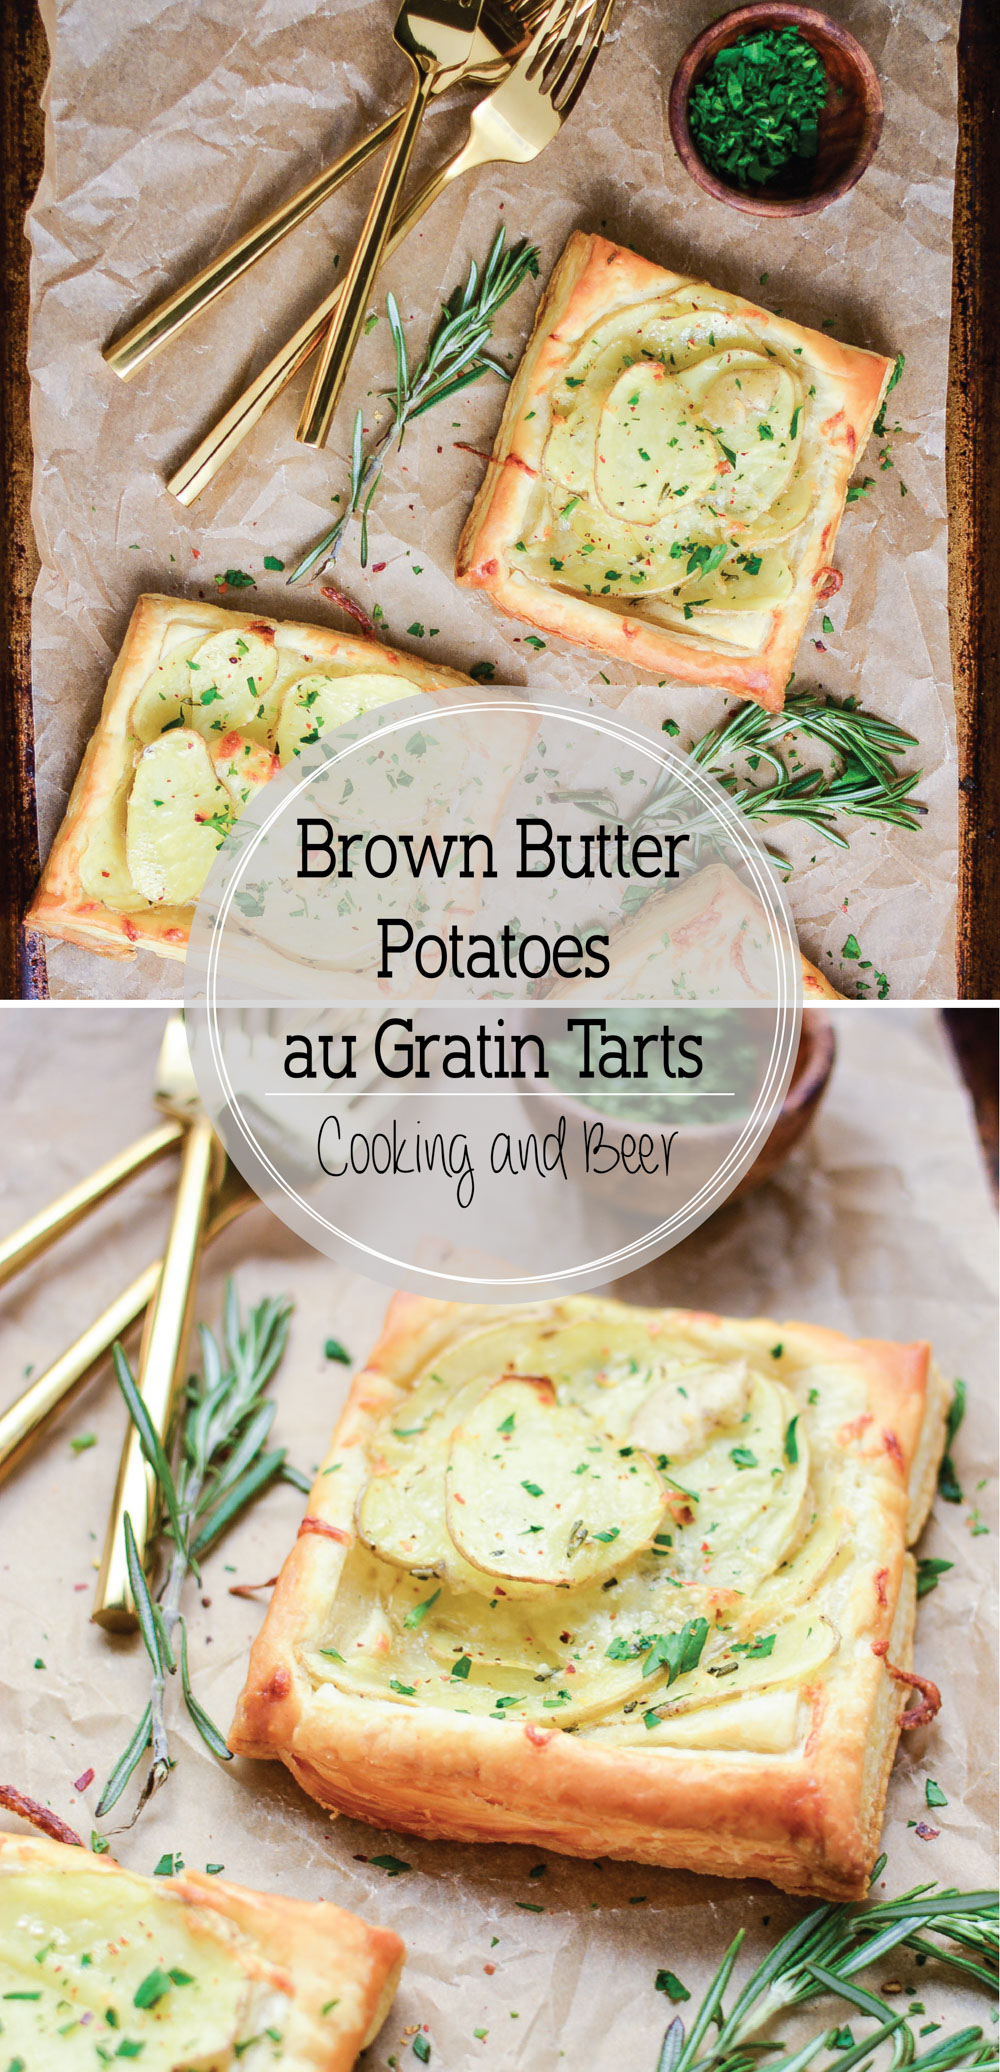 Brown Butter Potatoes Au Gratin Tarts are simple, yet delicious side dish that's perfect for Easter brunch!